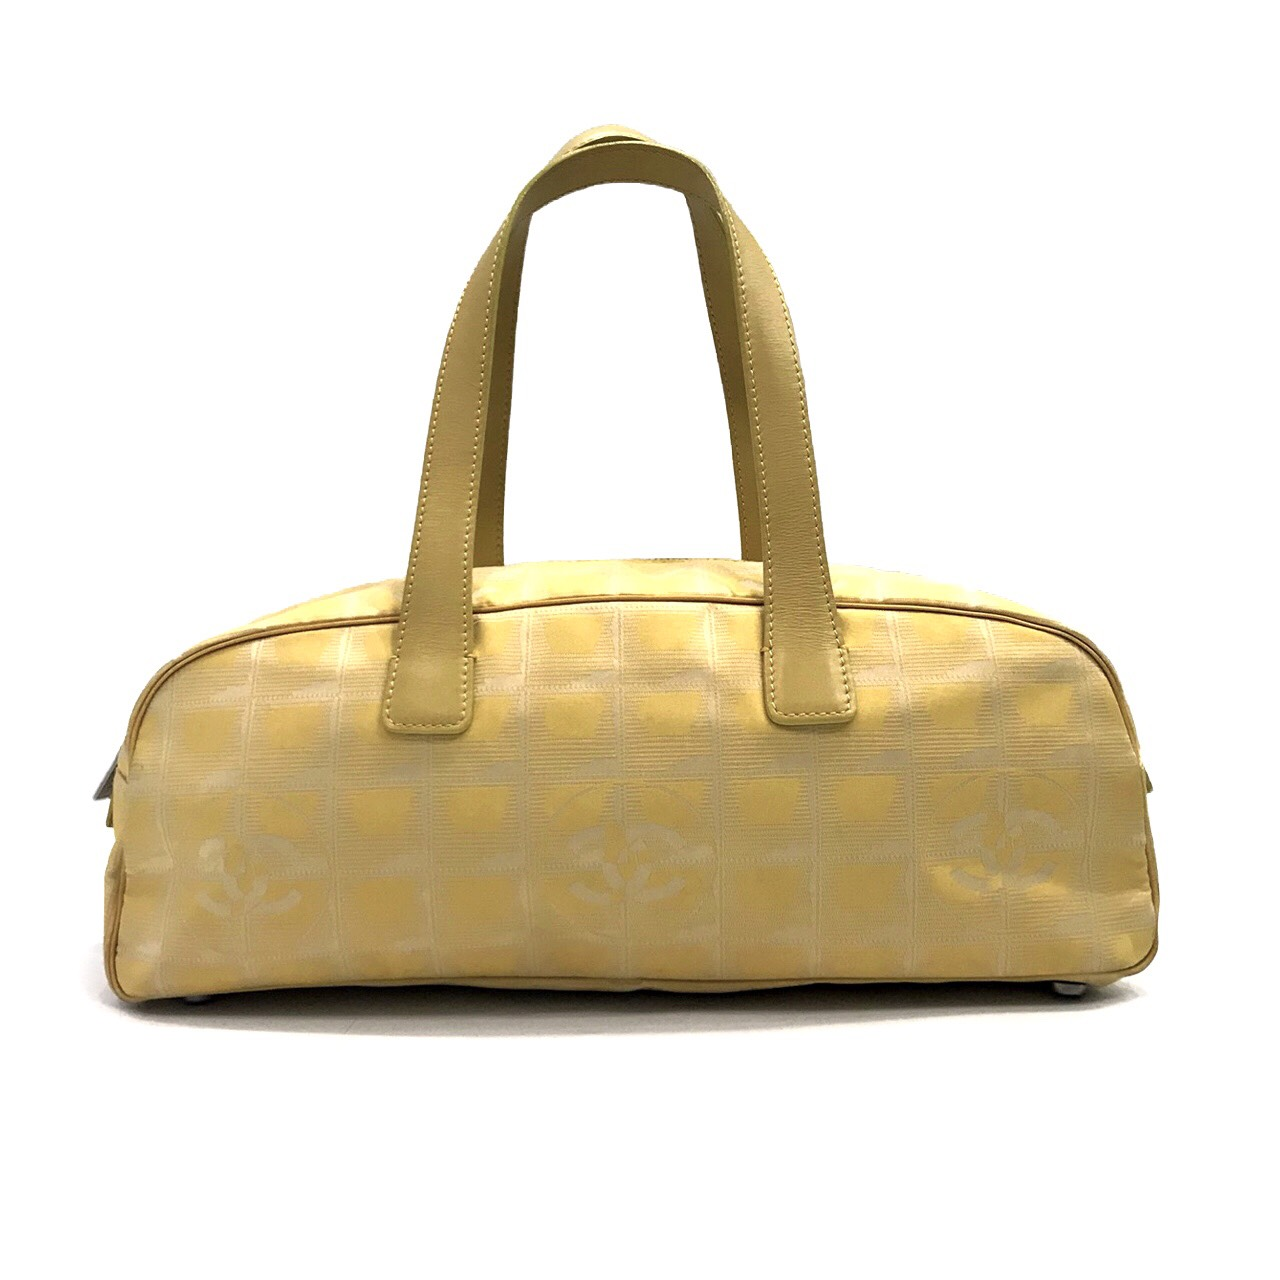 Used Chanel New Travel Vintage Boston Bag  in Yellow Fabric GHW